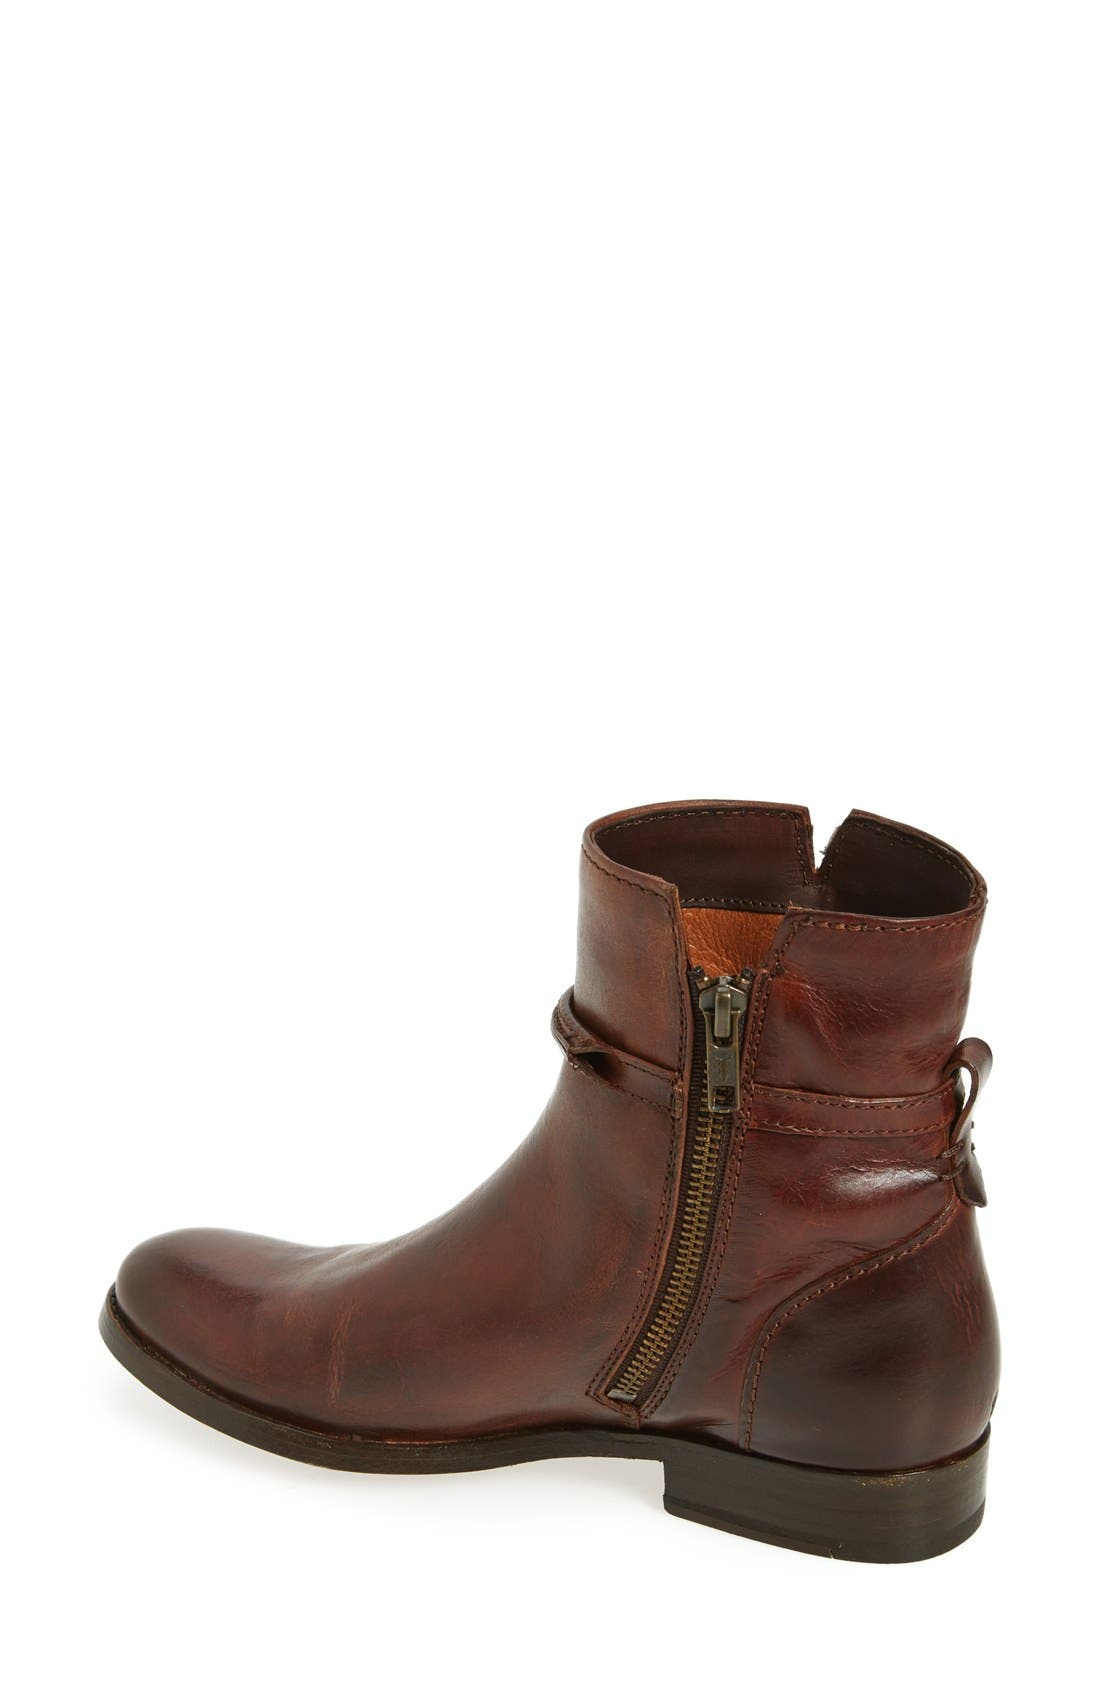 Melissa Bootie,                             Alternate thumbnail 2, color,                             Brown Leather